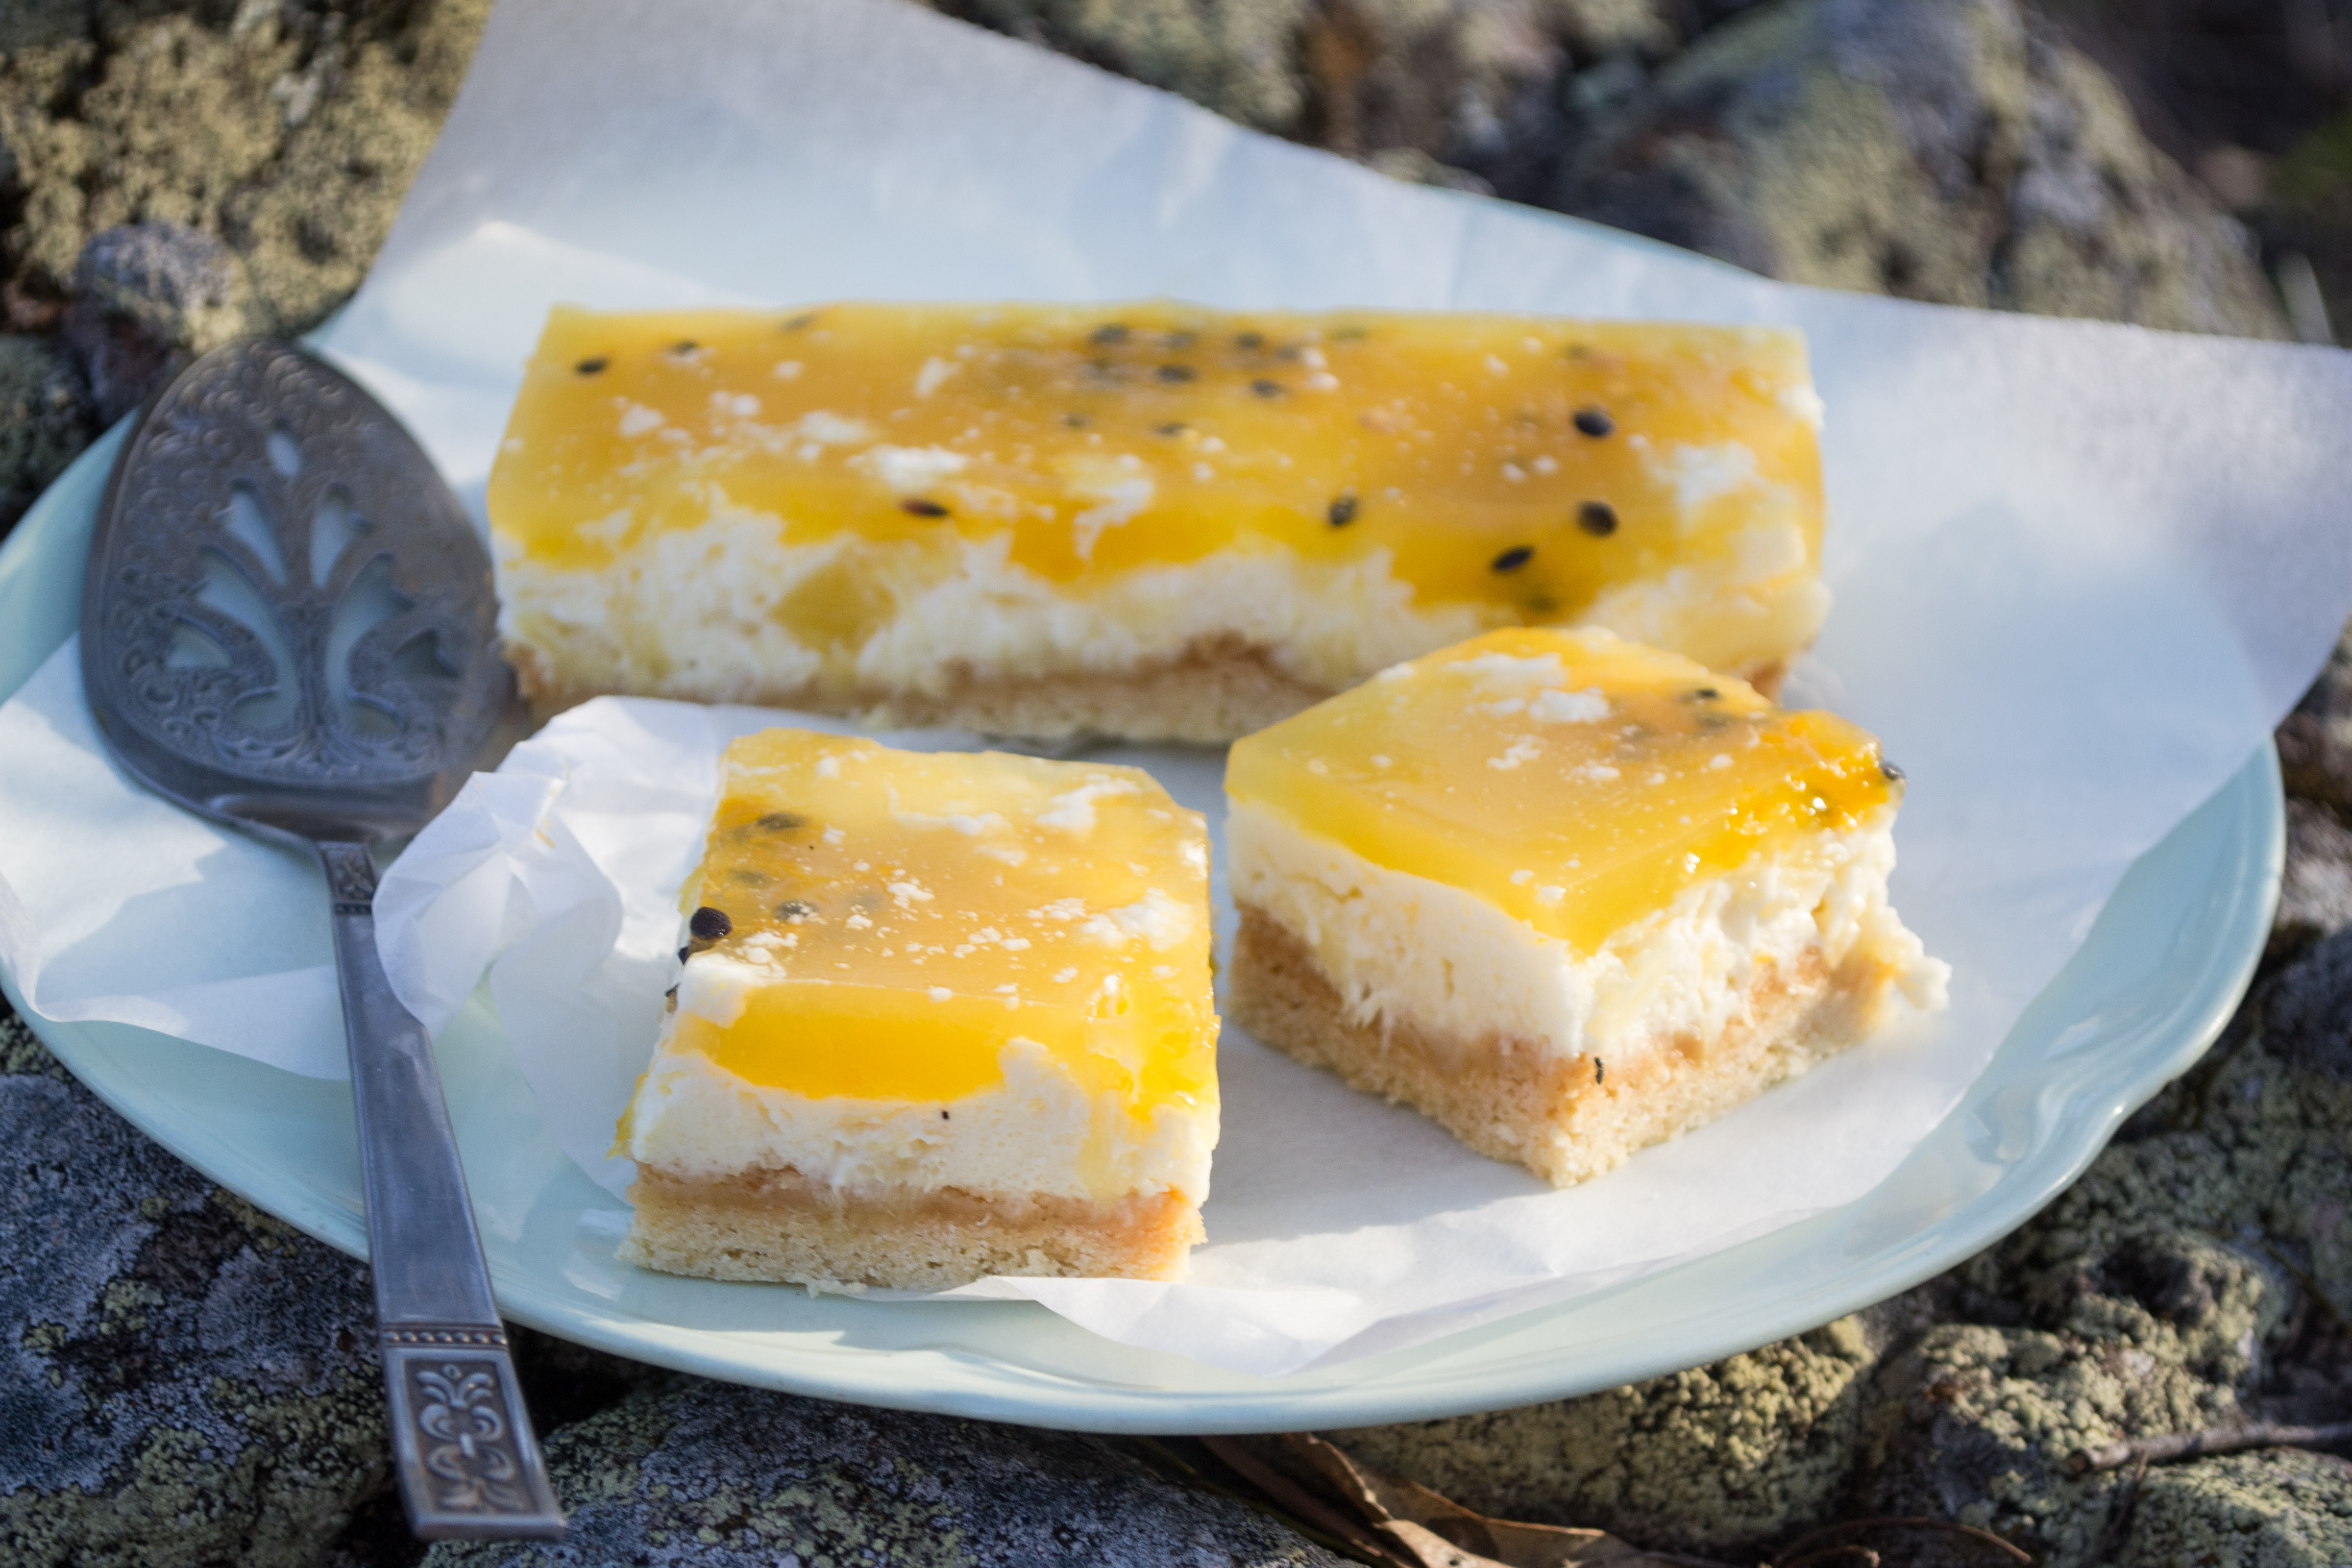 Pineapple and Passsionfruit Cheesecake Slice {Twelve Plates of Christmas}